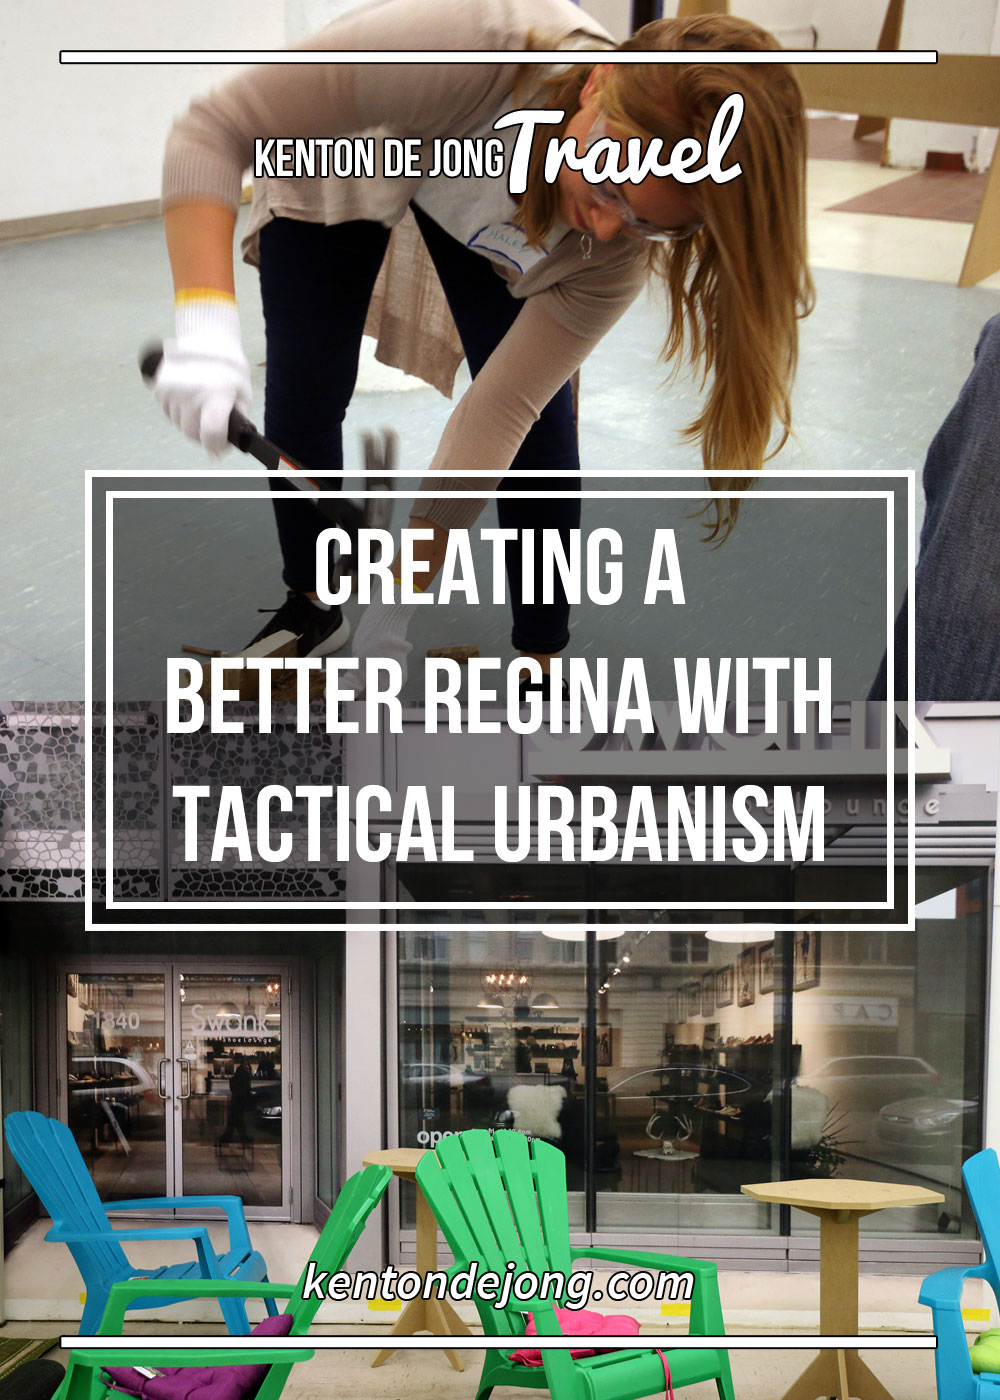 Creating a Better Regina with Tactical Urbanism